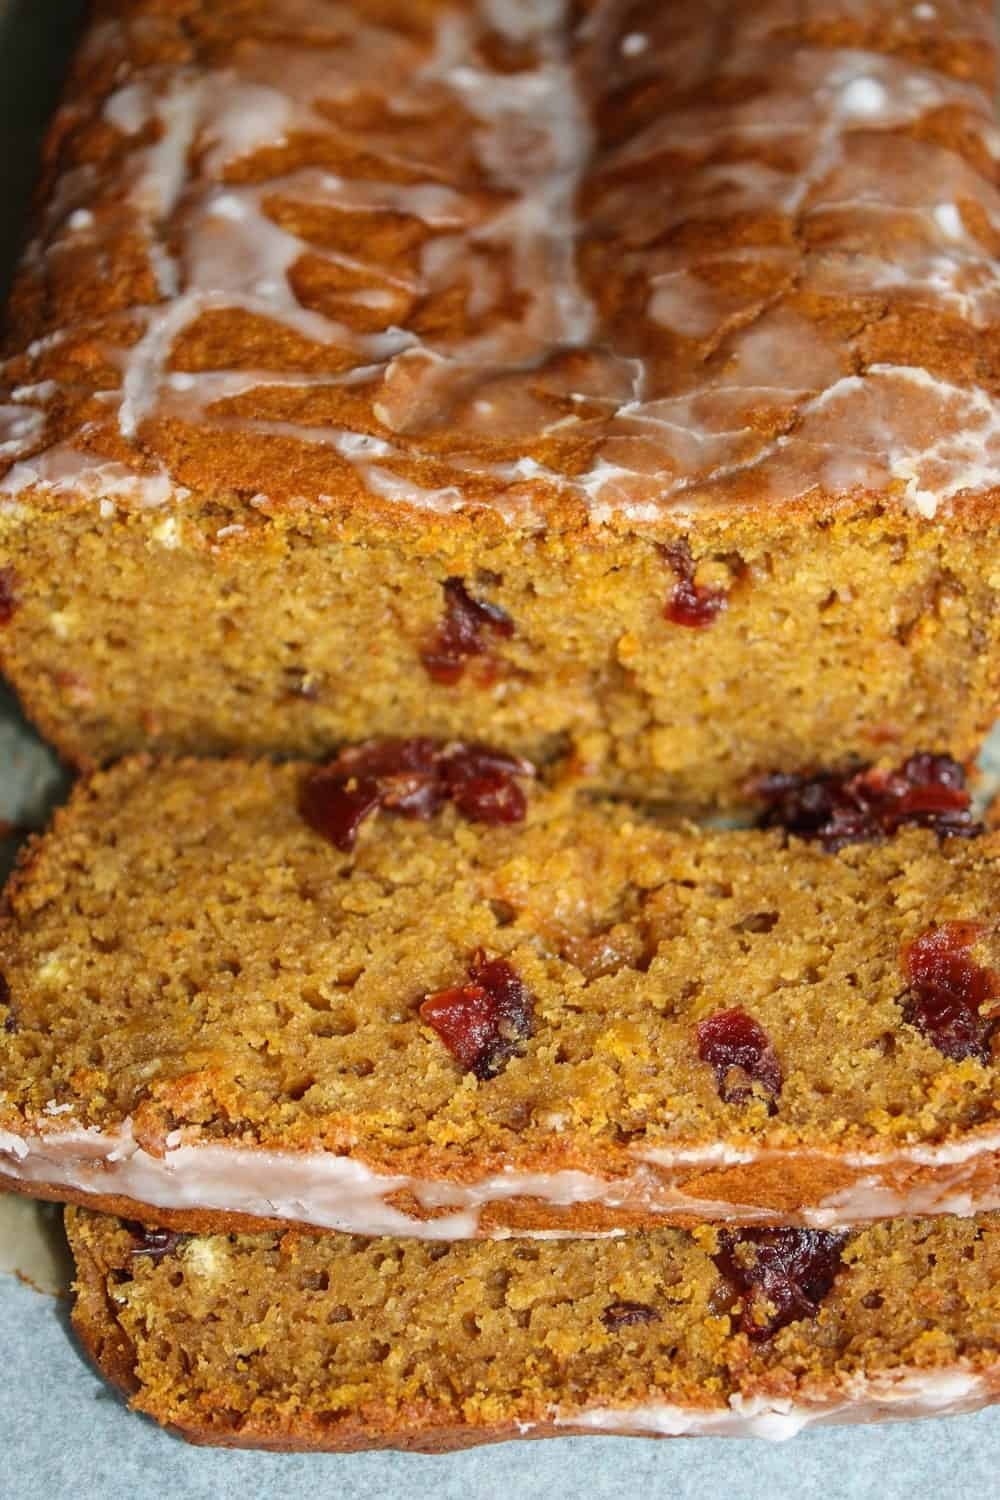 What better combination for fall then pumpkin and cranberry! This Pumpkin Cranberry Loaf is a great addition to your fall or holiday menus. It is loaded with flavour and cranberries.